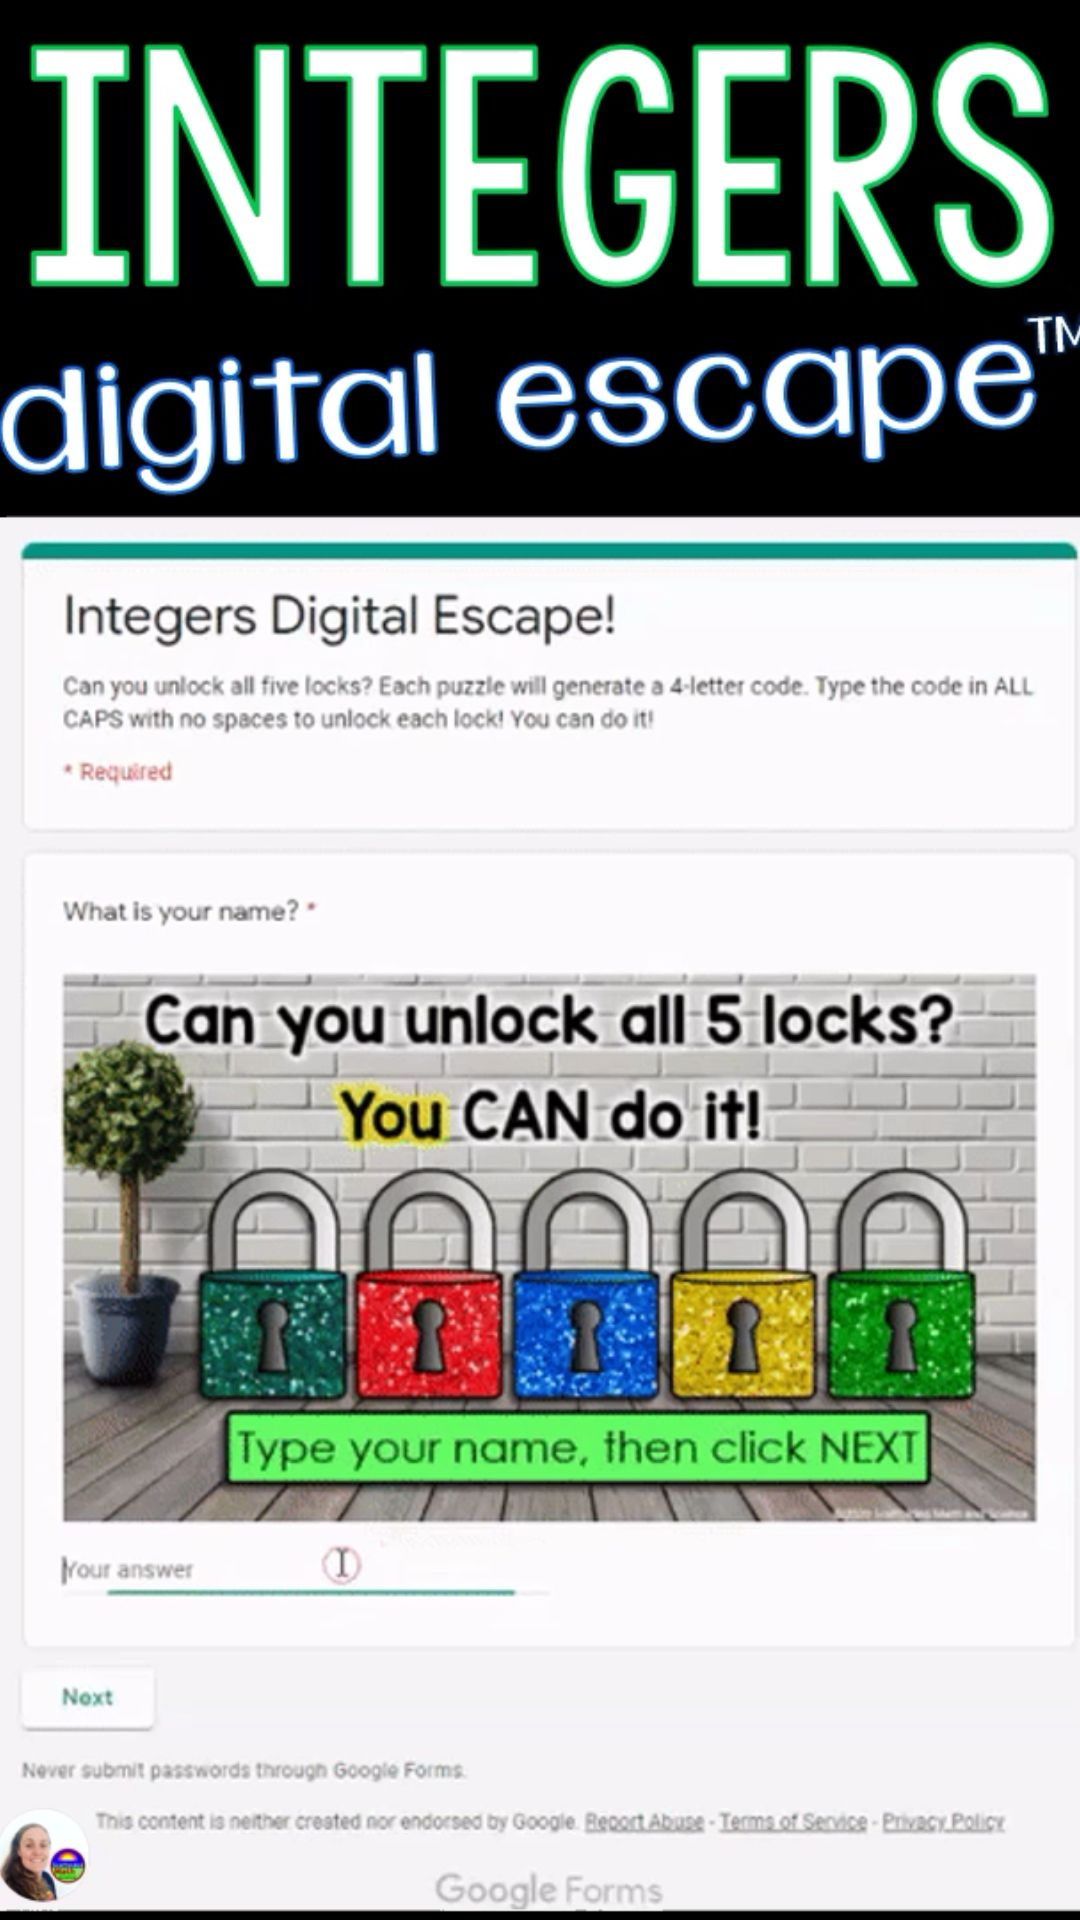 Integers Digital Escape Room An Immersive Guide By Scaffolded Math And Science Adding and subtracting integers escape